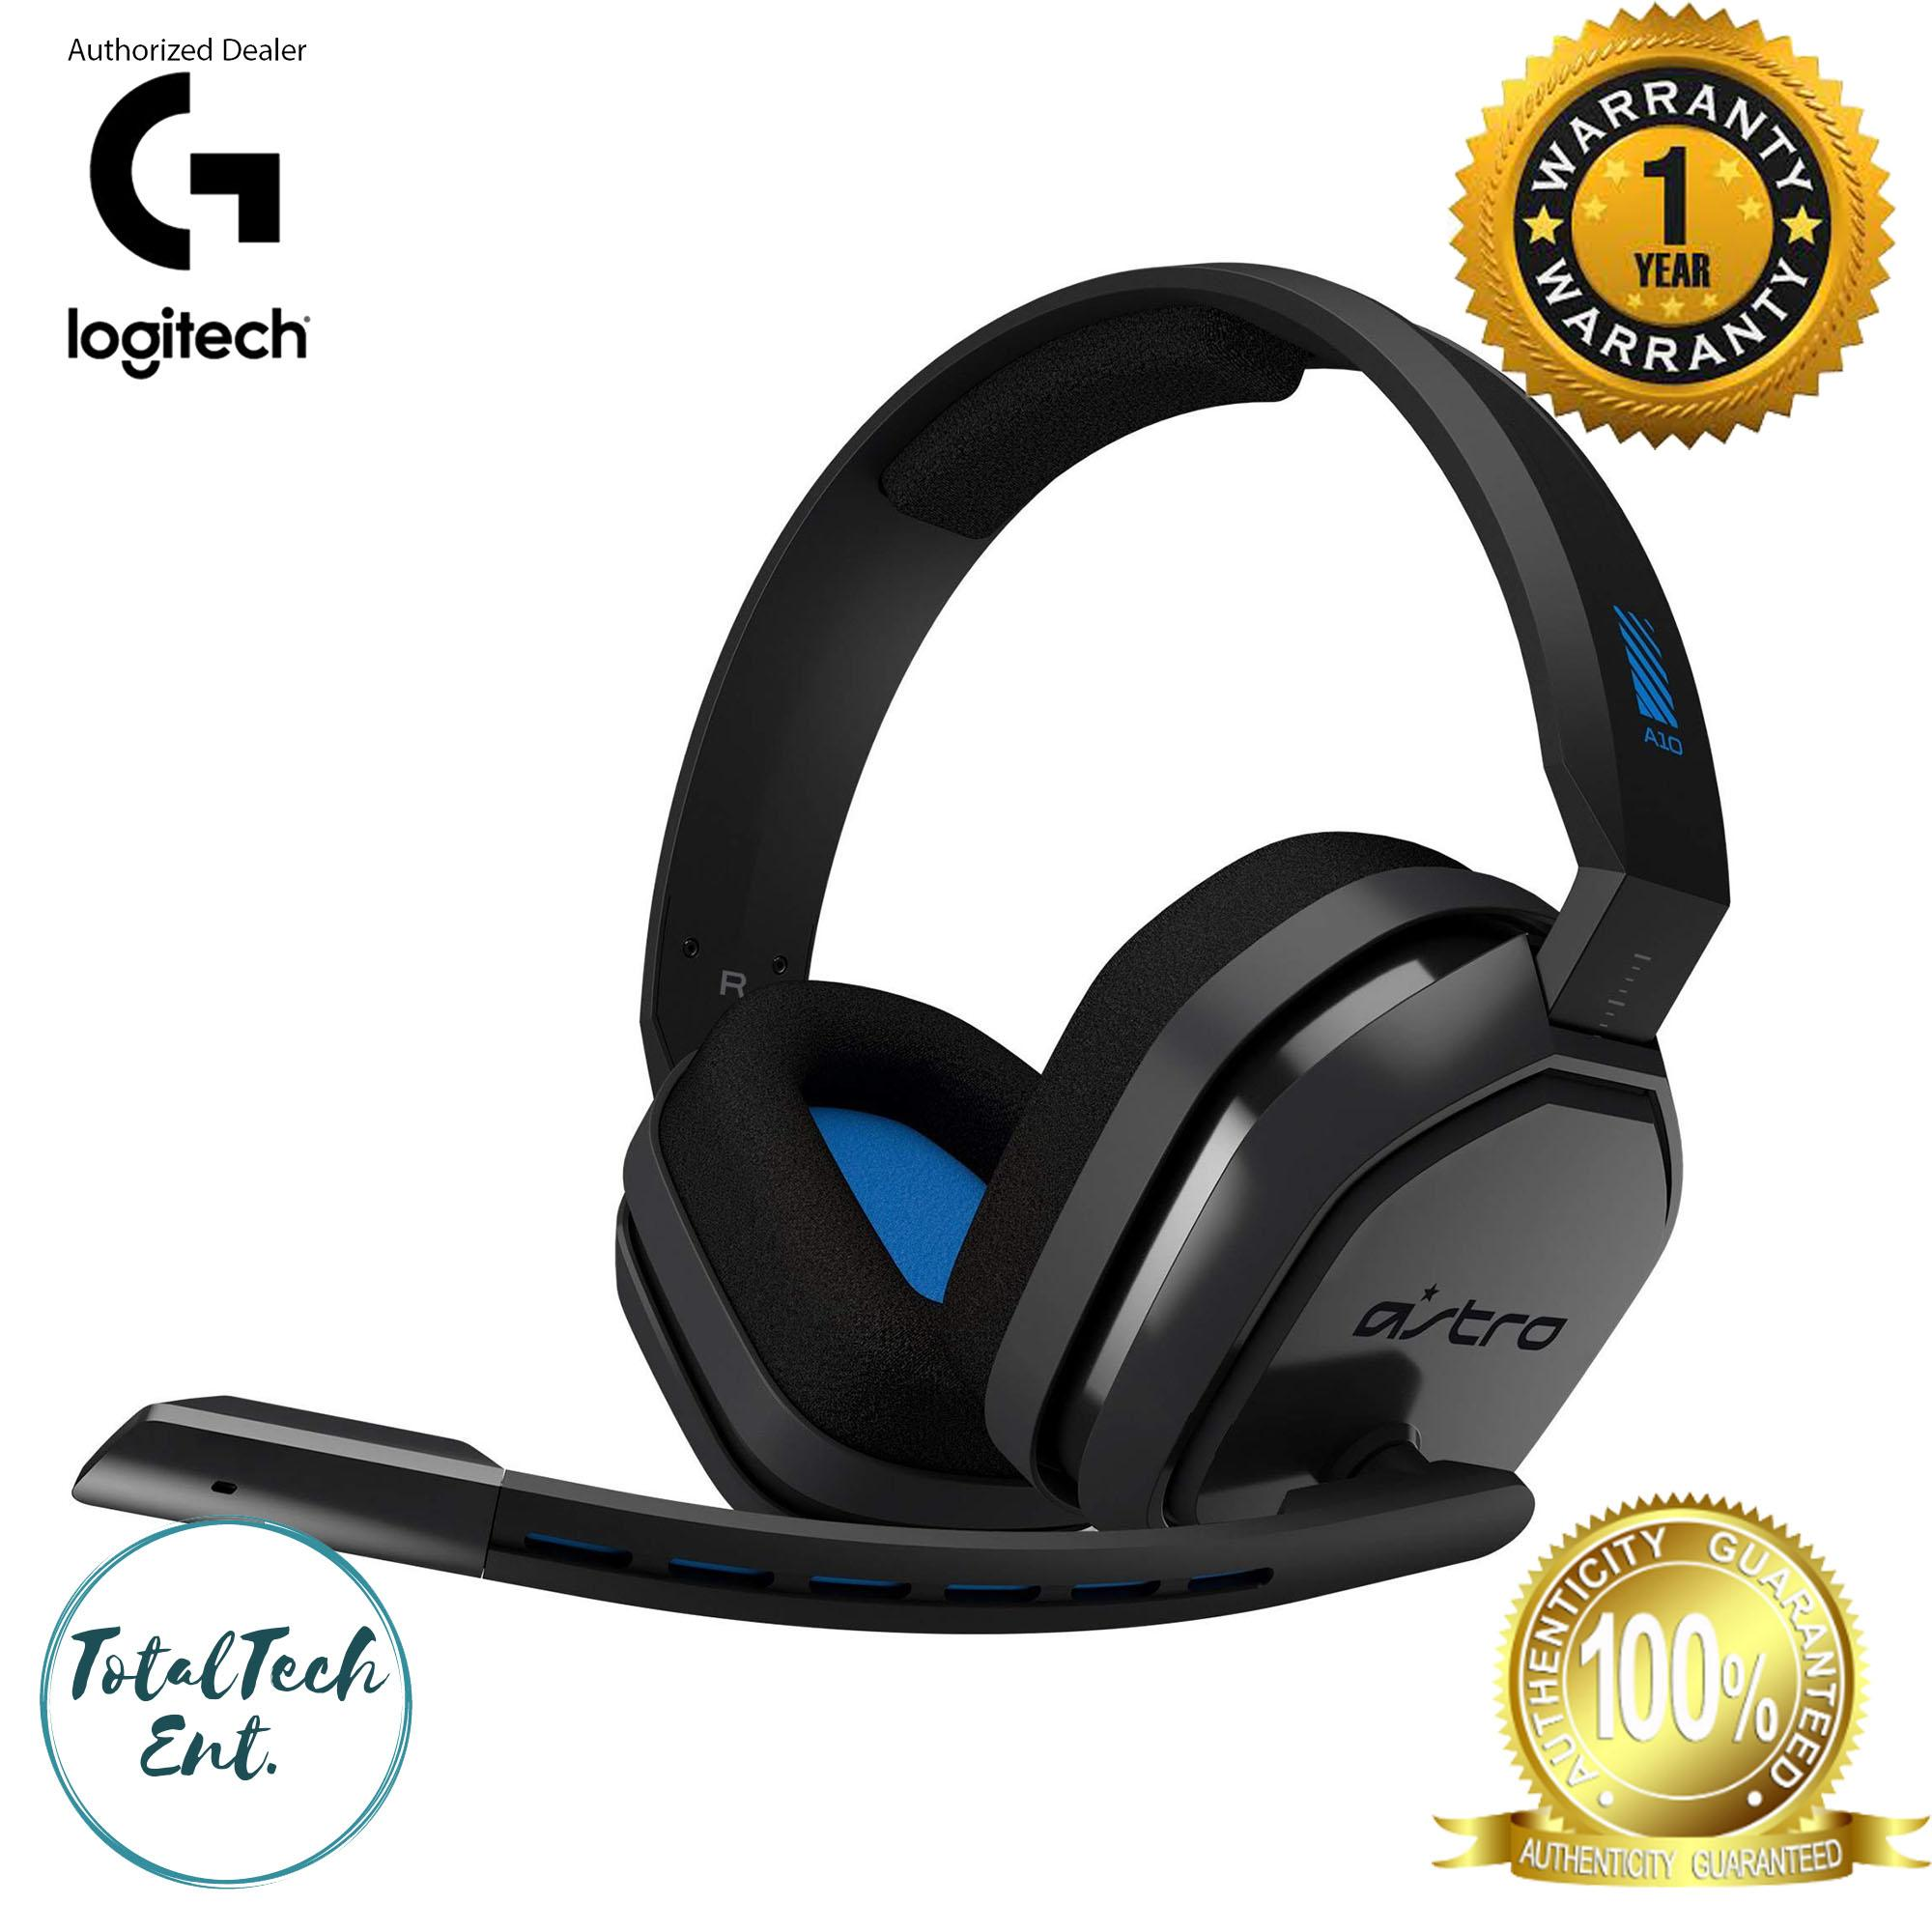 LOGITECH ASTRO A10 Gaming Headset for Xbox One, PS4, Nintendo Switch,  Mobile, MAC, and PC